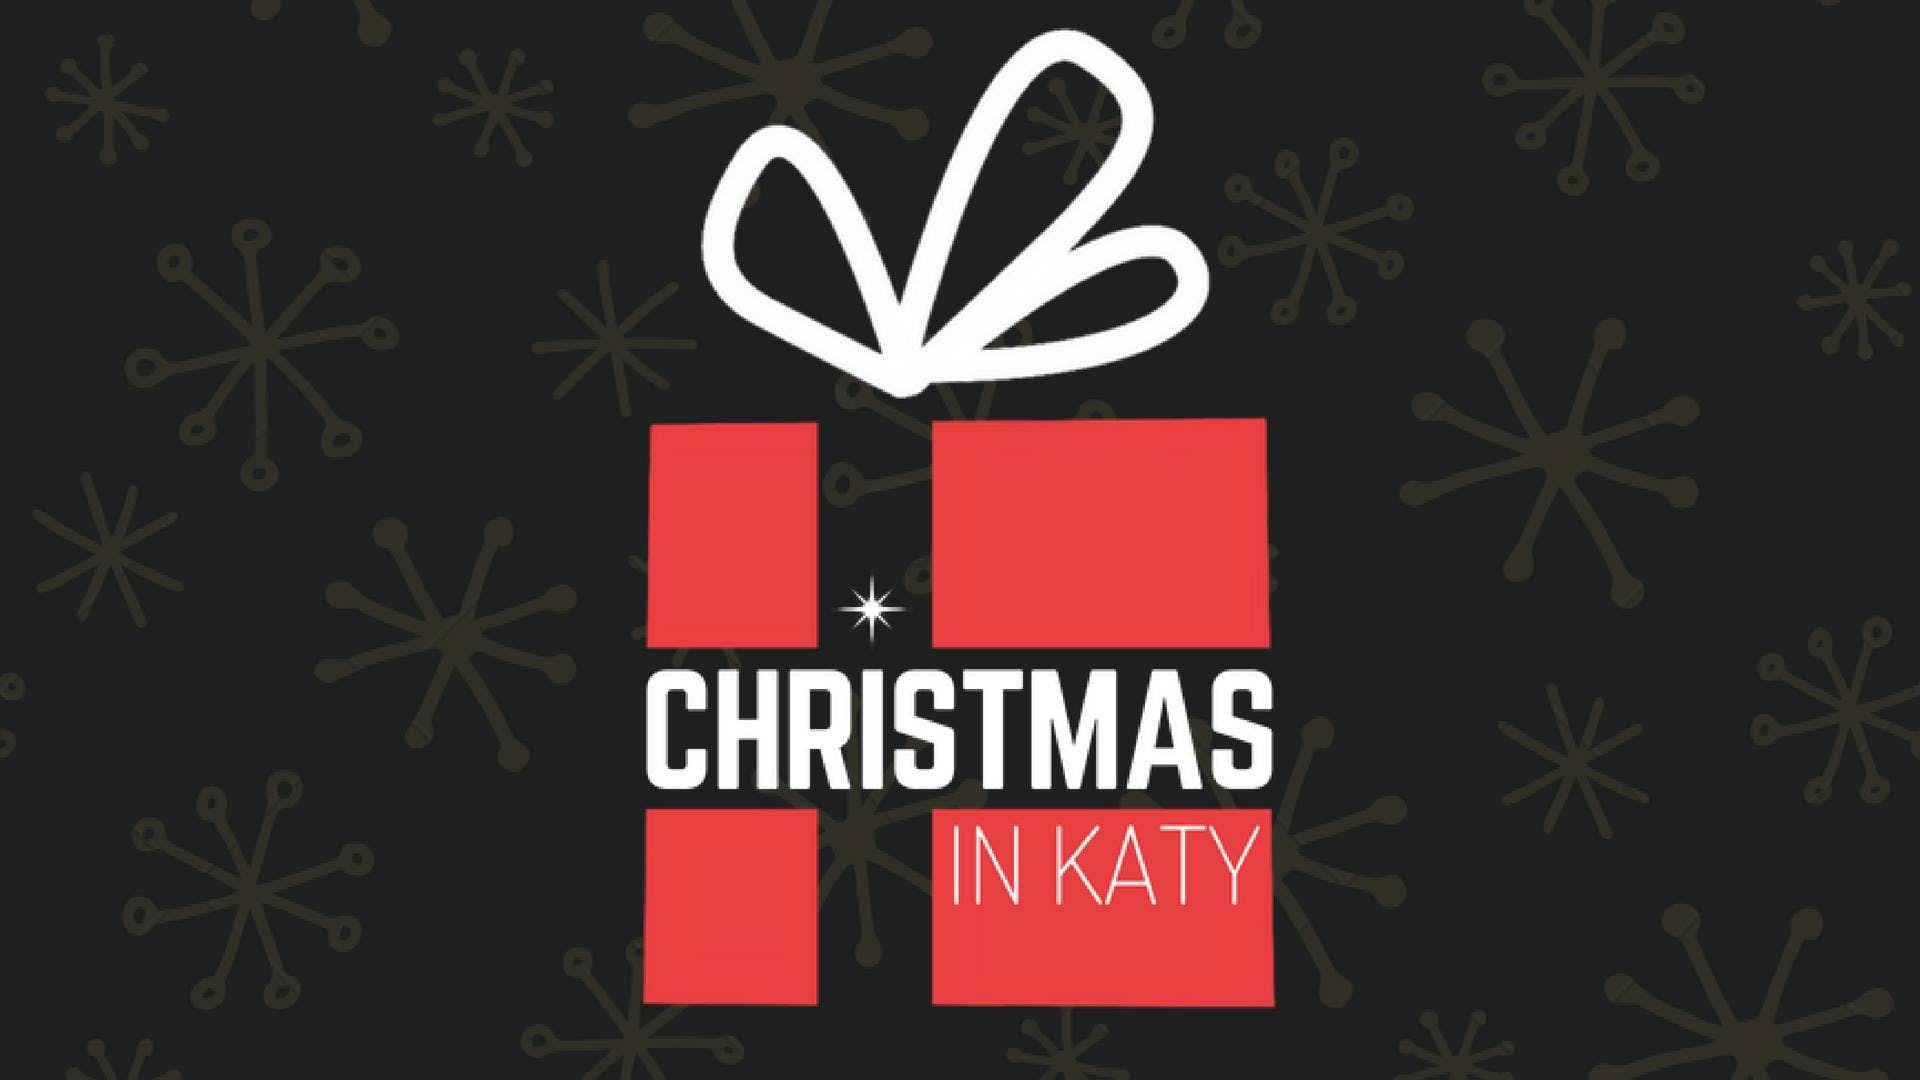 Christmas-in-Katy-tx-no-label-brewing-co